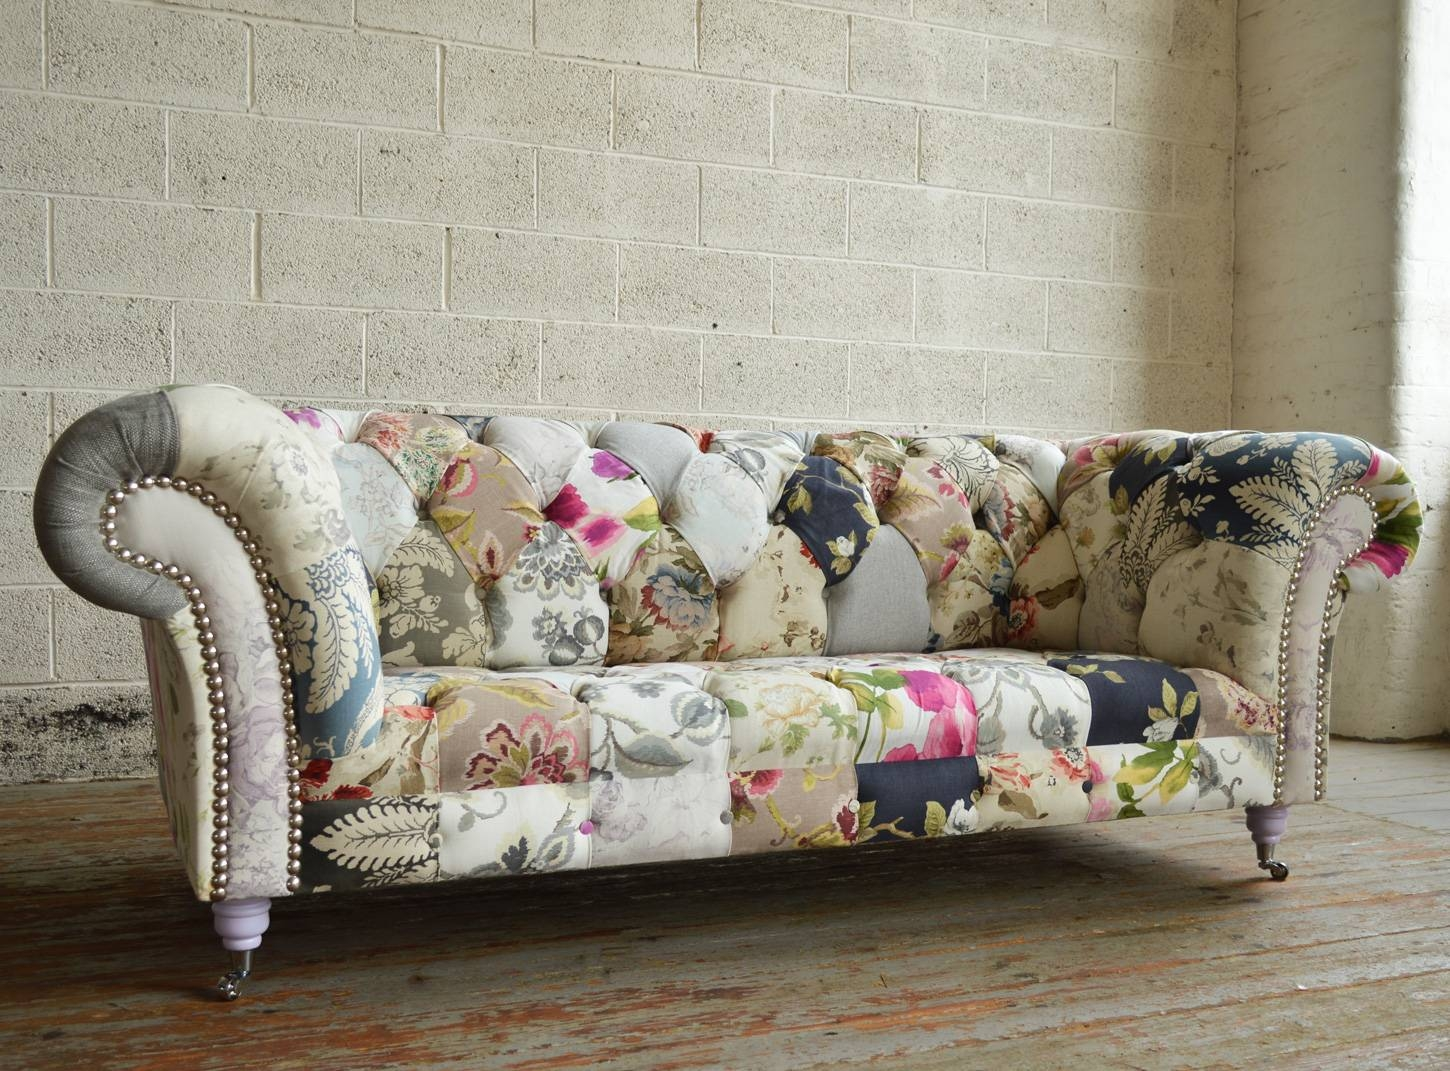 Chintz Sofa Chintz Sofa Leather Sectional Sofa Amazing Design within Floral Sofas And Chairs (Image 2 of 15)